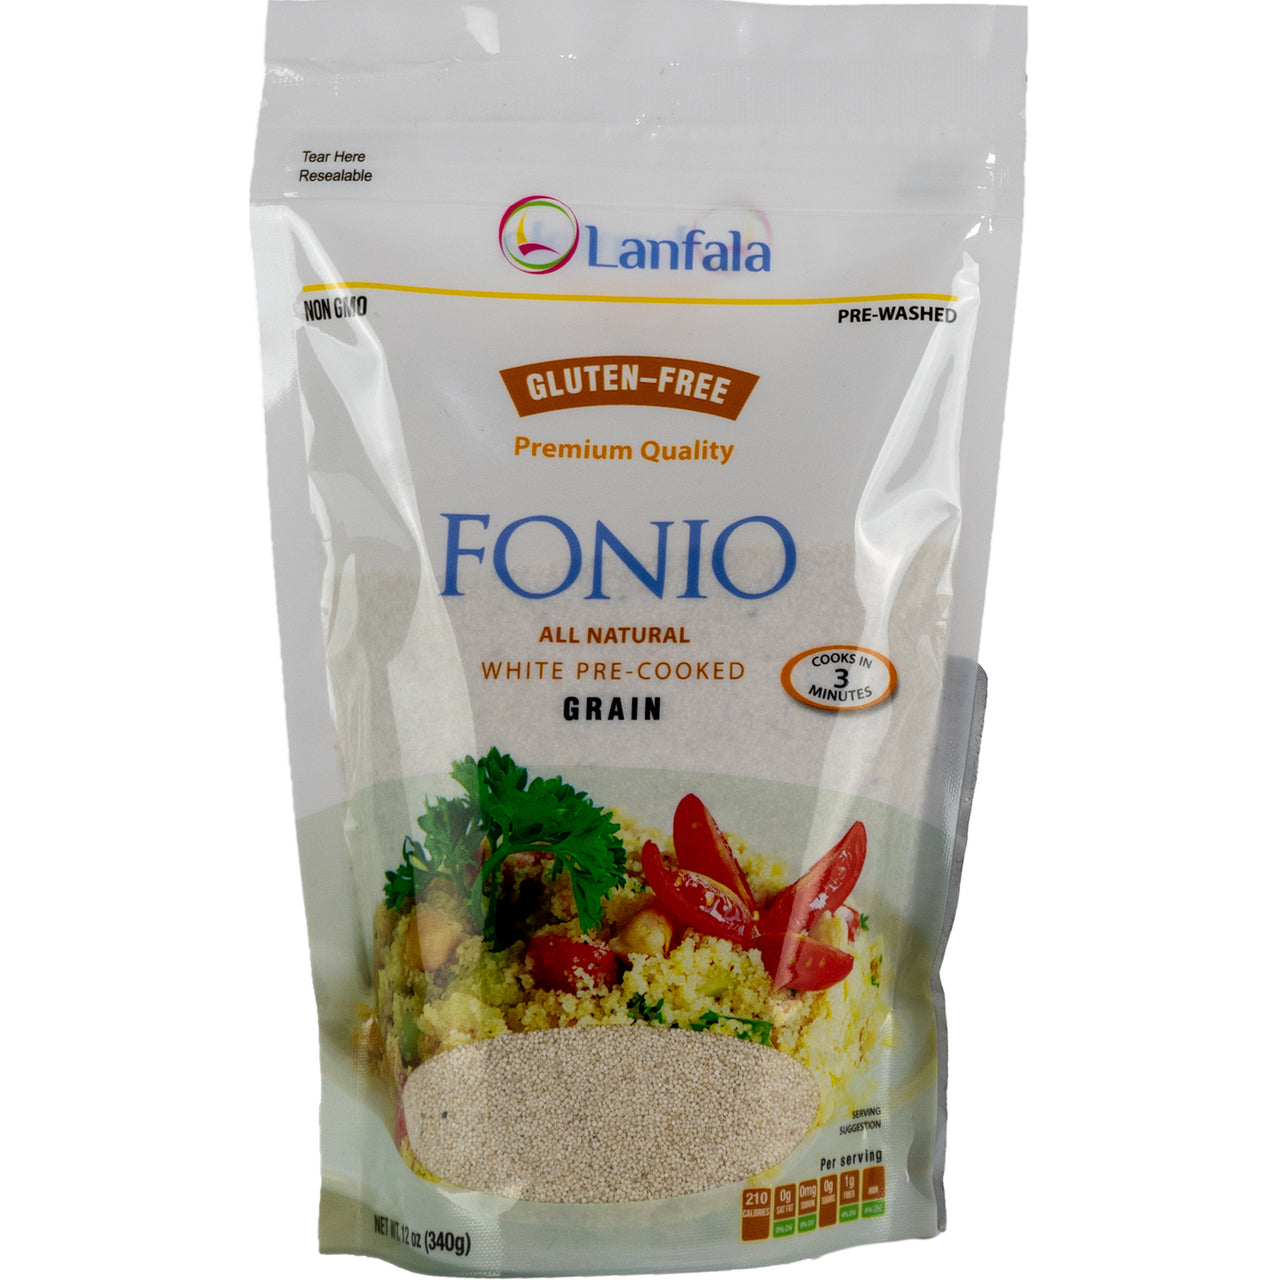 *Intro Sale: Lanfala Fonio - 10% Off